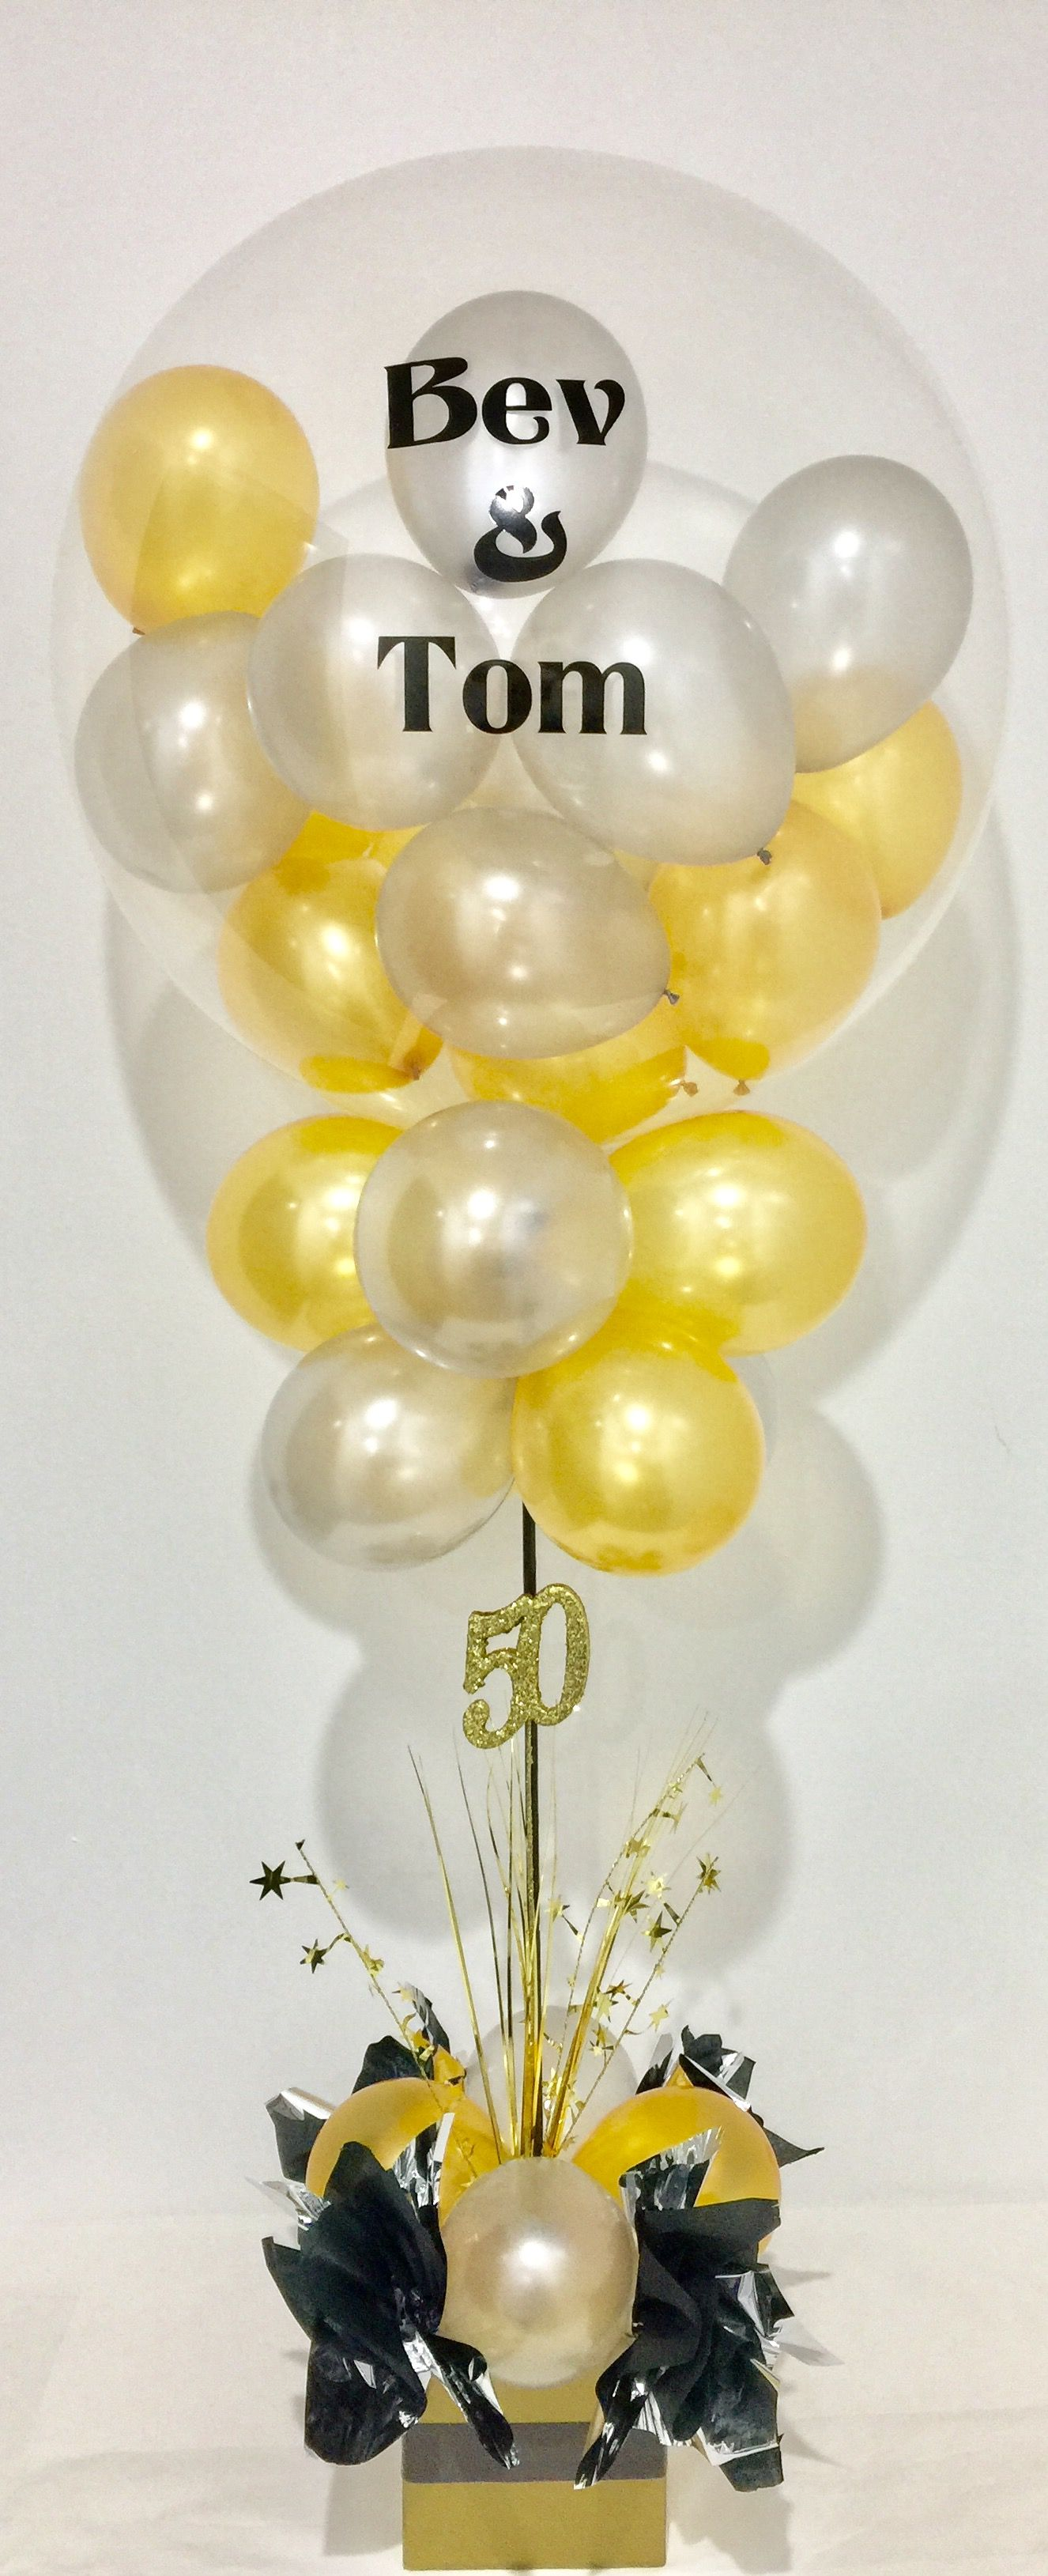 50th wedding anniversary balloon decoration in elegant gold and ...